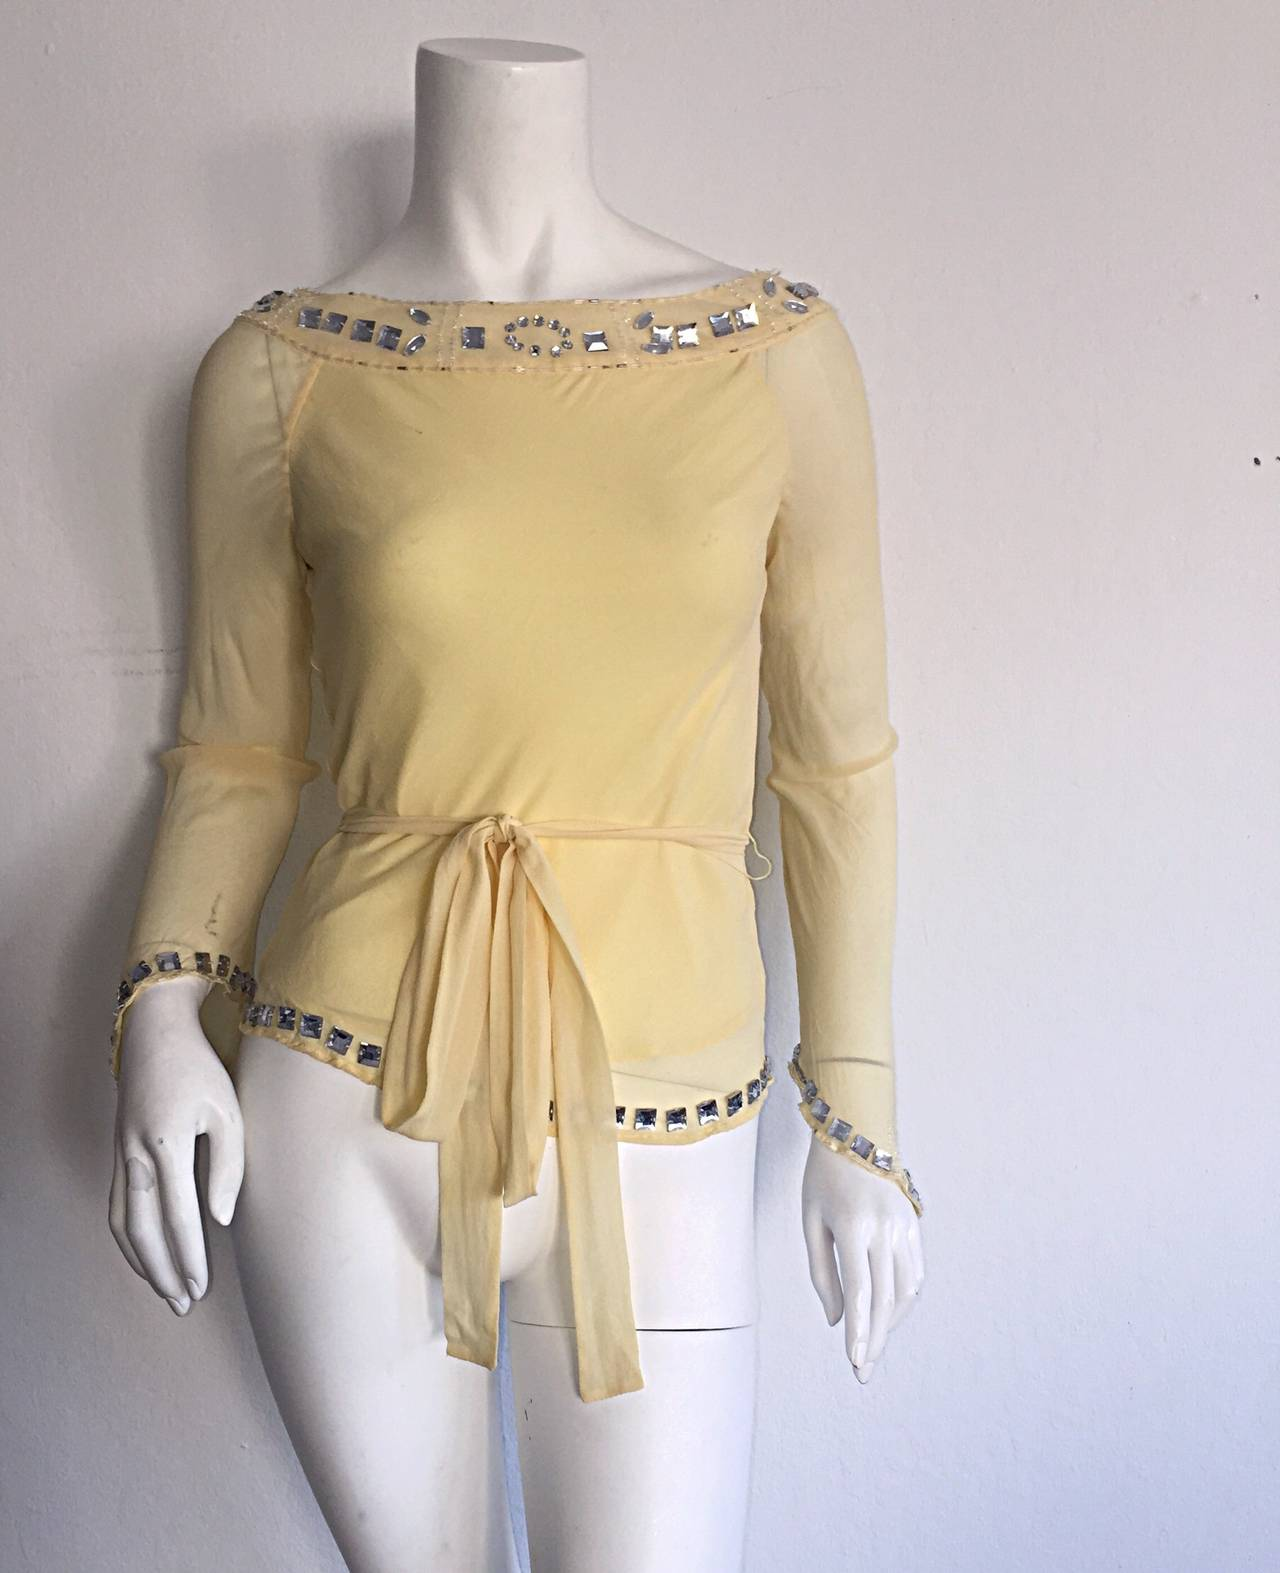 1990s Vintage Chloe by Karl Lagerfeld Yellow Chiffon Angel Blouse w/ Rhinestones For Sale 3